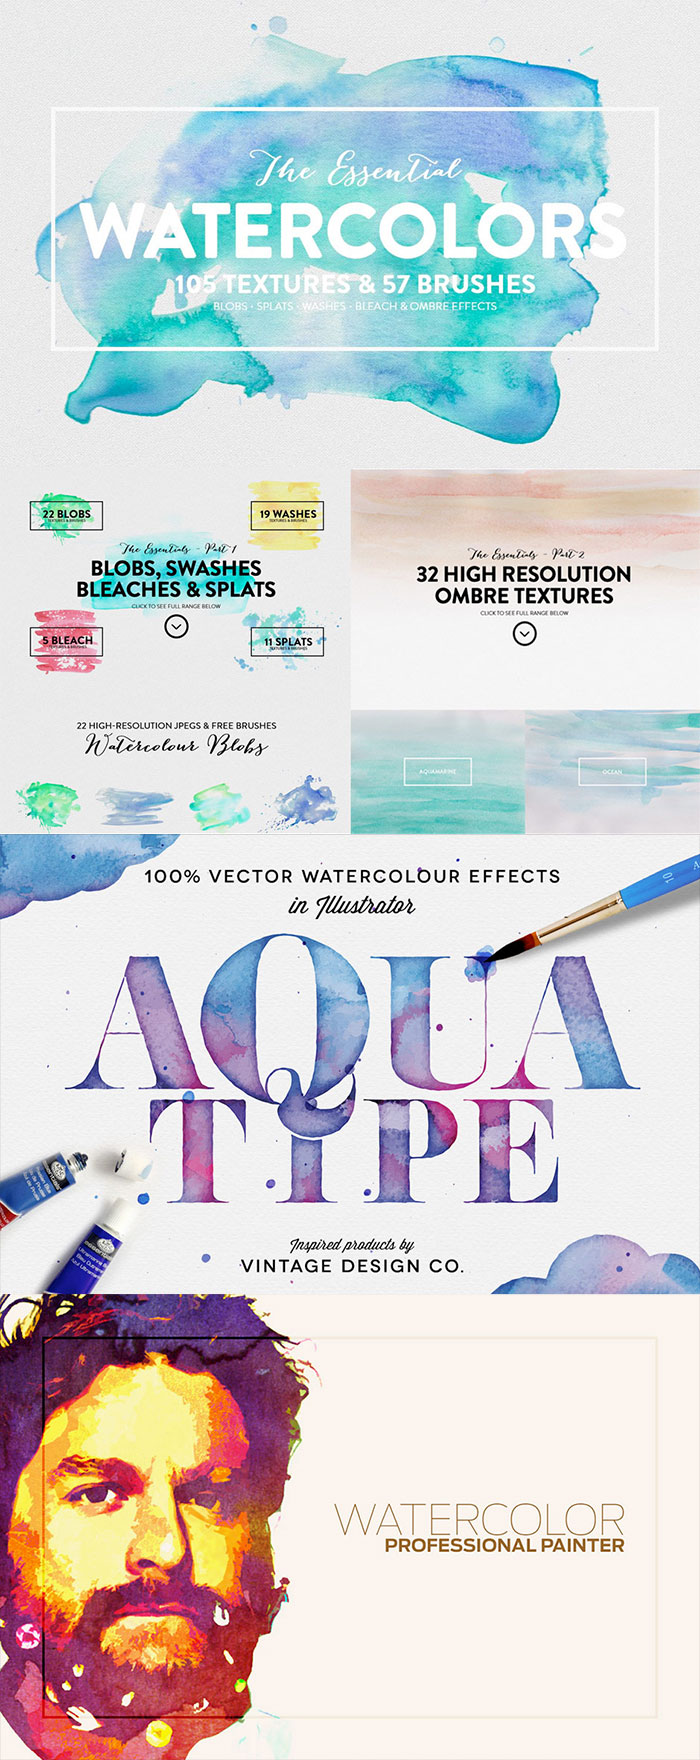 Beautiful Watercolor Textures and Effects. The Beautifully Artistic Designer's Kit (1000s of Creative Resources) for just $29.